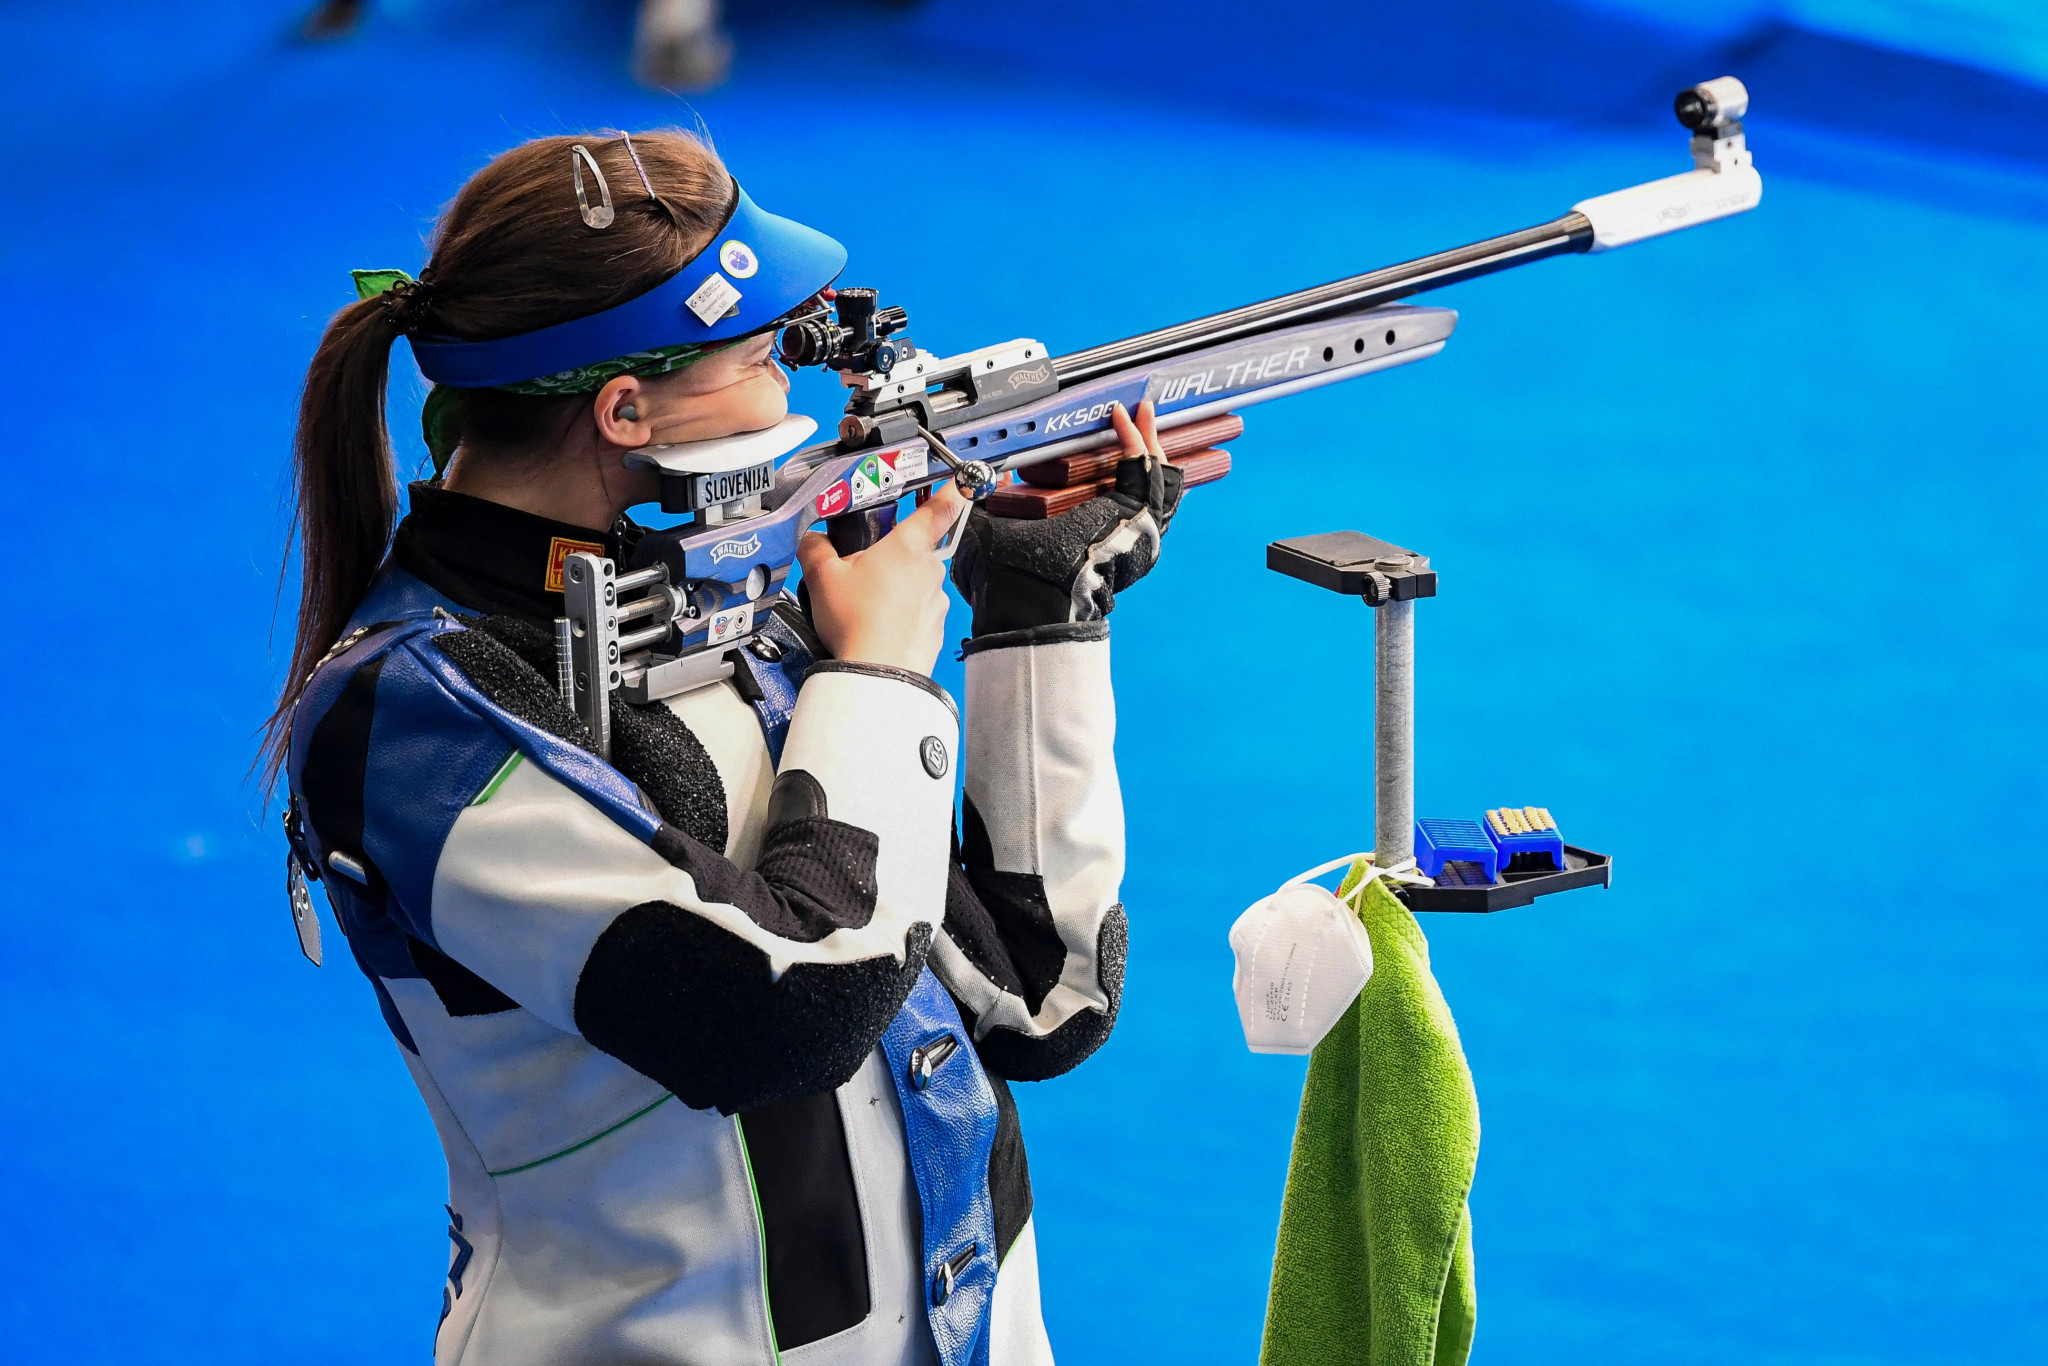 Slovenia's Ziva Dvorsak won the women's 50m rifle 3 positions gold today ©Getty Images